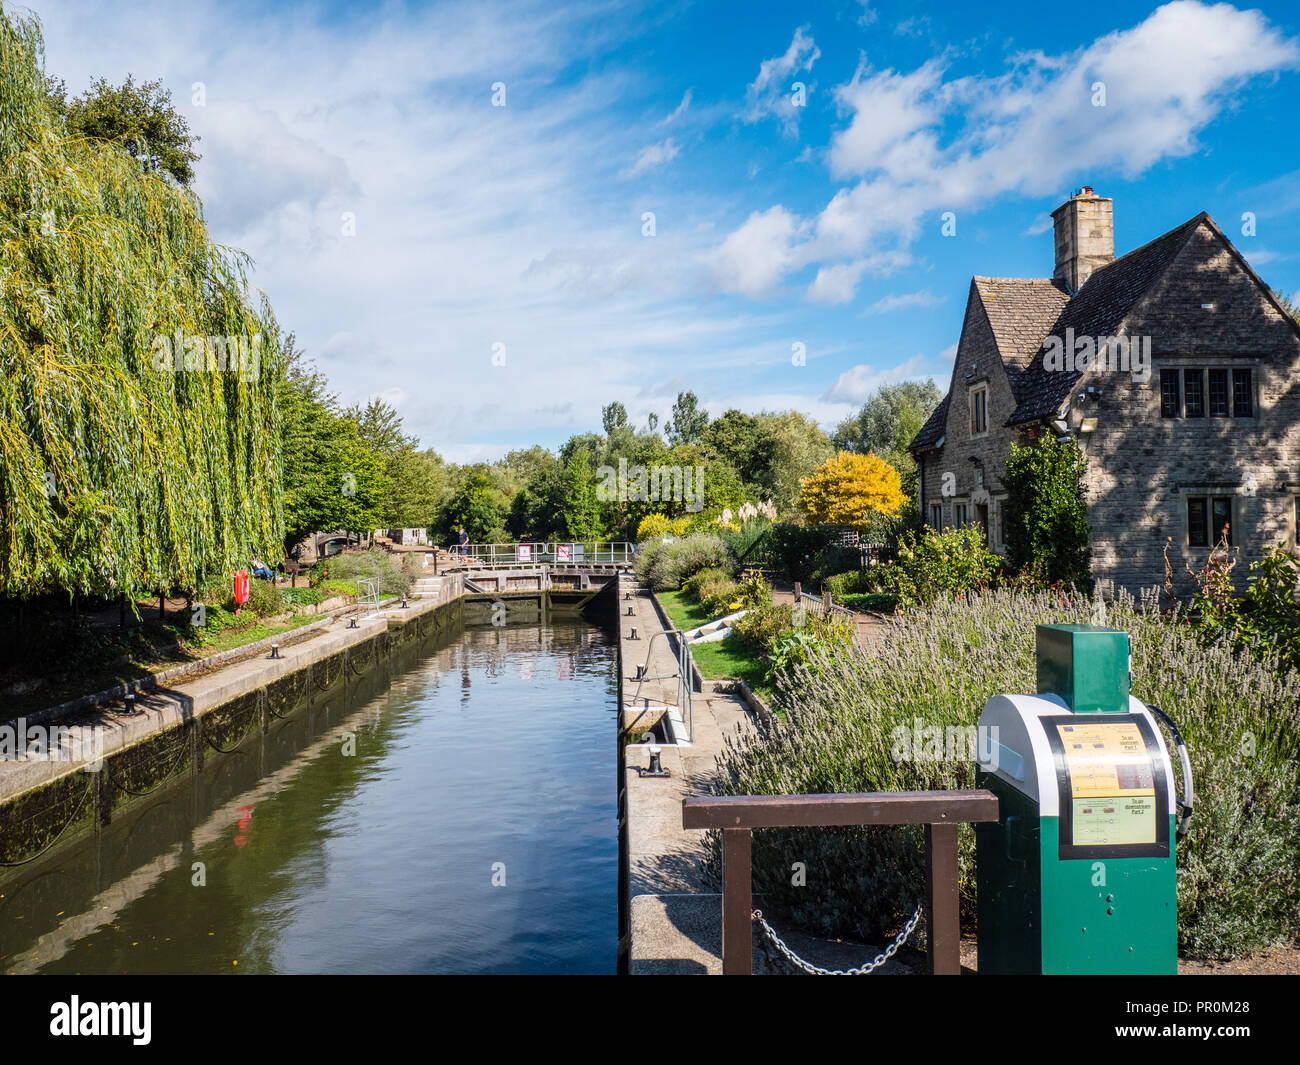 Iffley Lock, River Thames, Oxford, Oxfordshire, England, UK, GB. Stock Photo